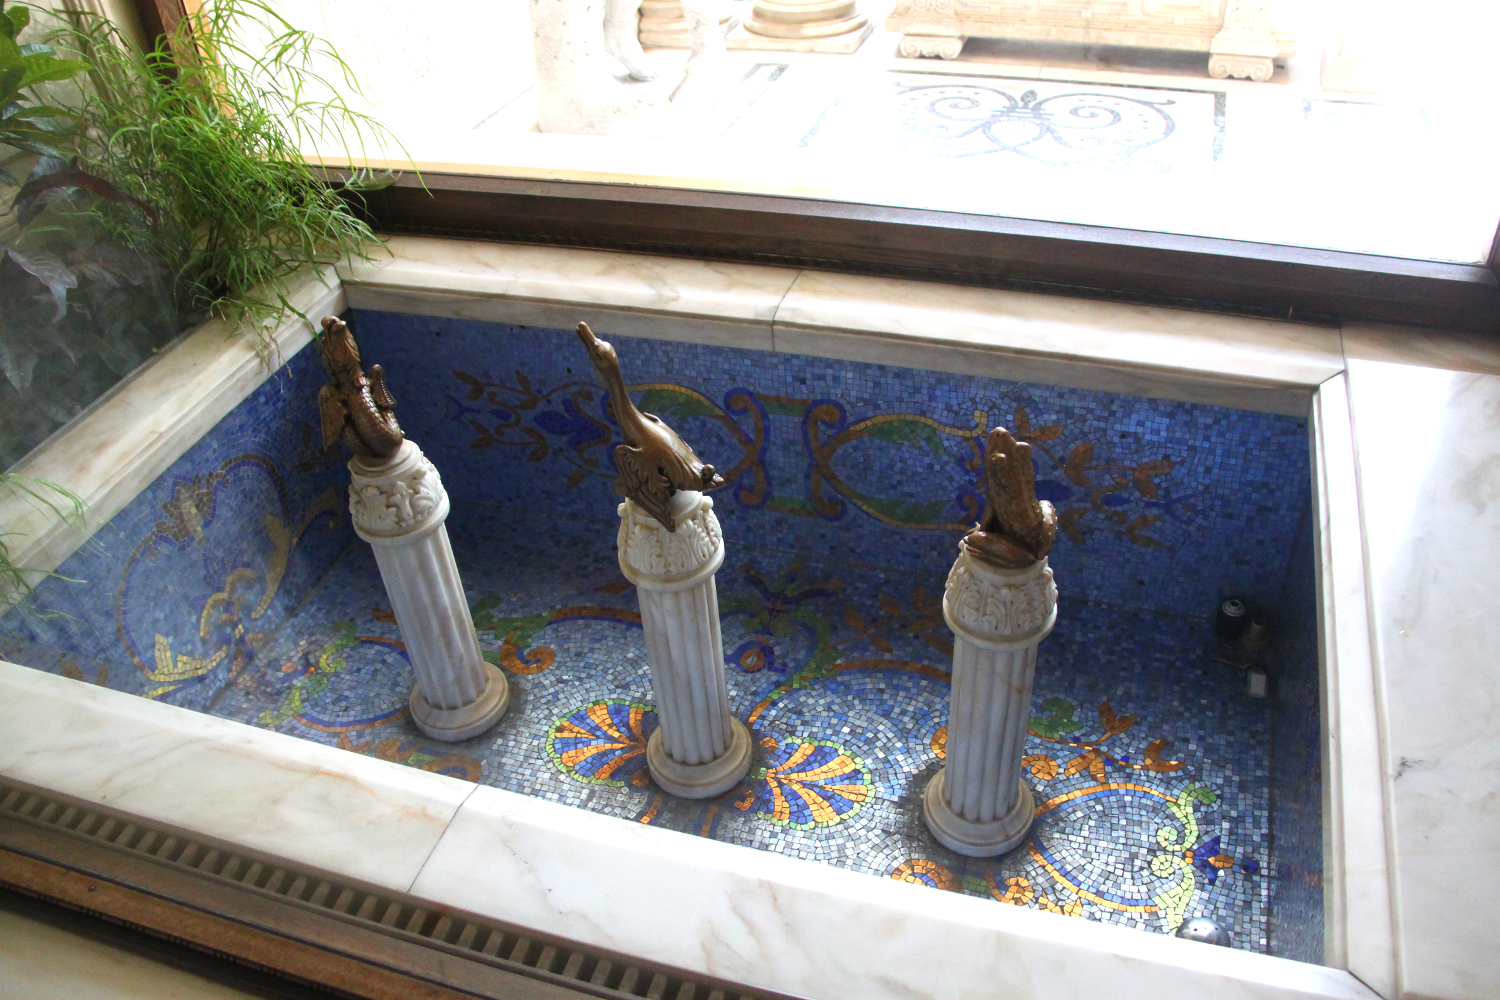 Primaverii (Spring) Palace, Ceausescu's private residence - small fountains - there are numerous in the house!